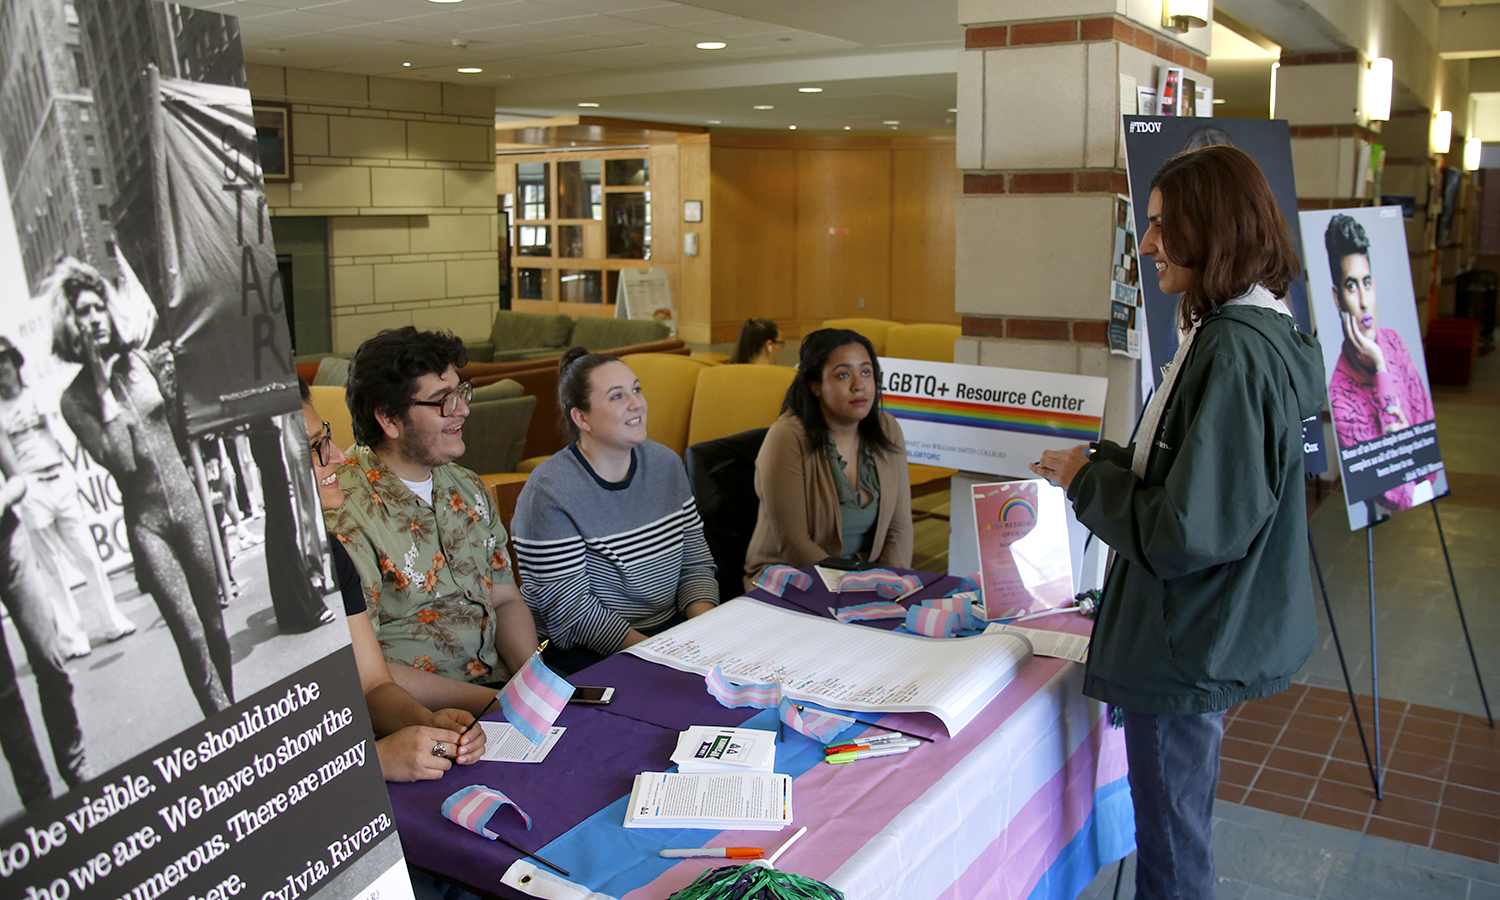 In Scandling Campus Center, Divaya Tewari '18, Kevin Cervantes 'X, Alexa Holmes 'X and Stephanie Pichardo 'X talk with Banan Otaibi '18 while tabling on behalf of of the LGBTQ+ Resource Center during Transgender Day of Visibility.